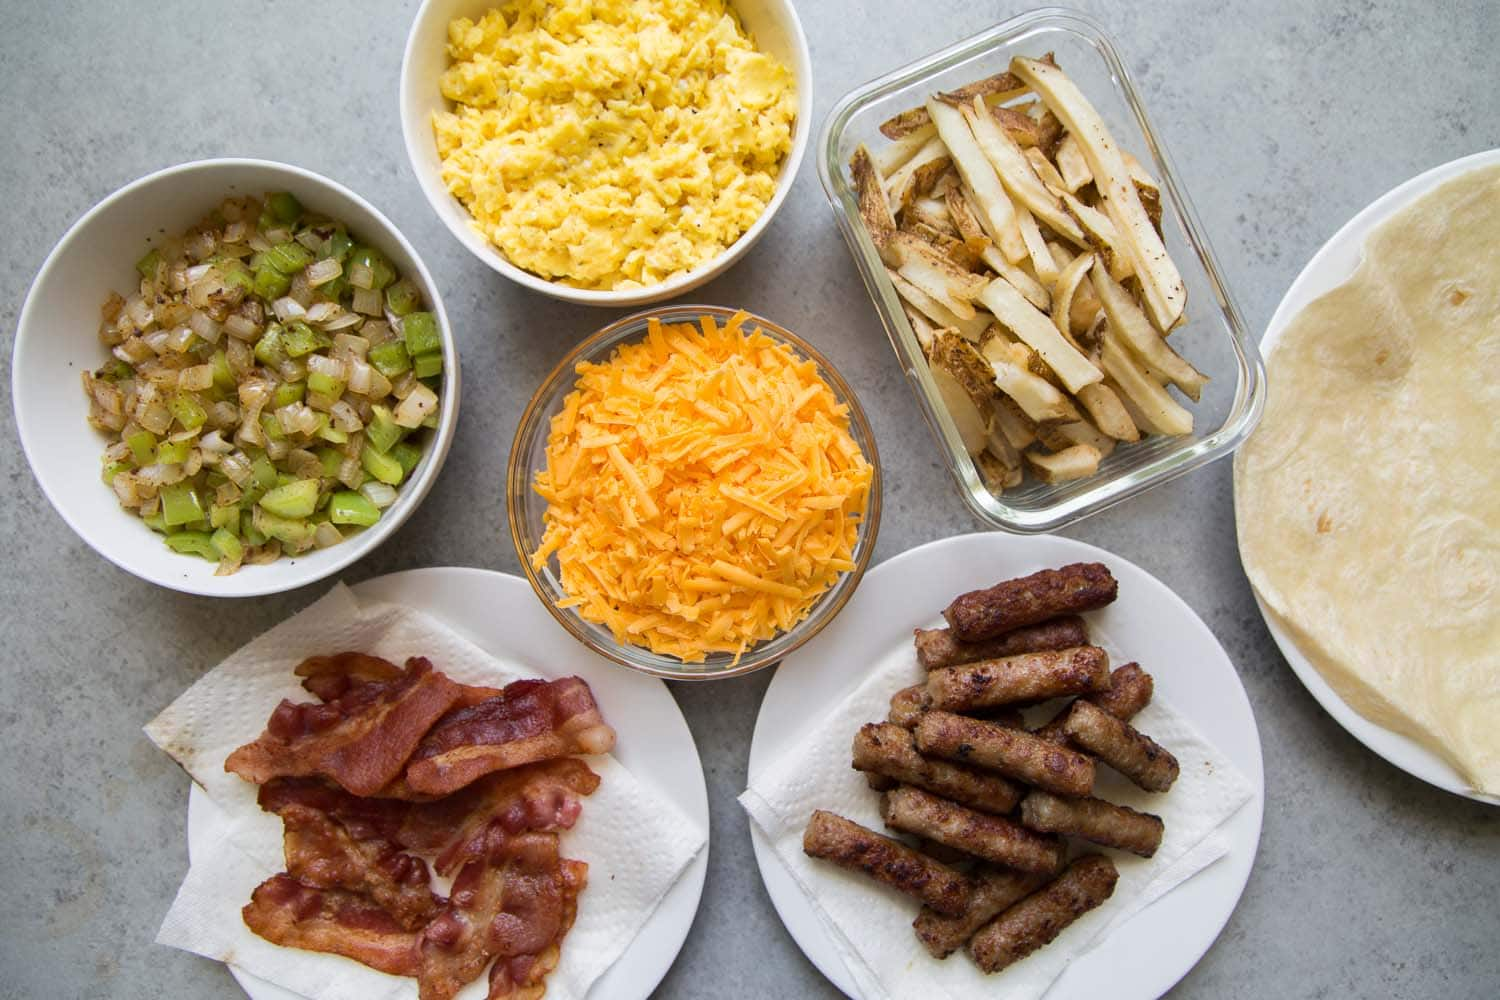 Ingredients for Sausage Bacon Breakfast Burrito